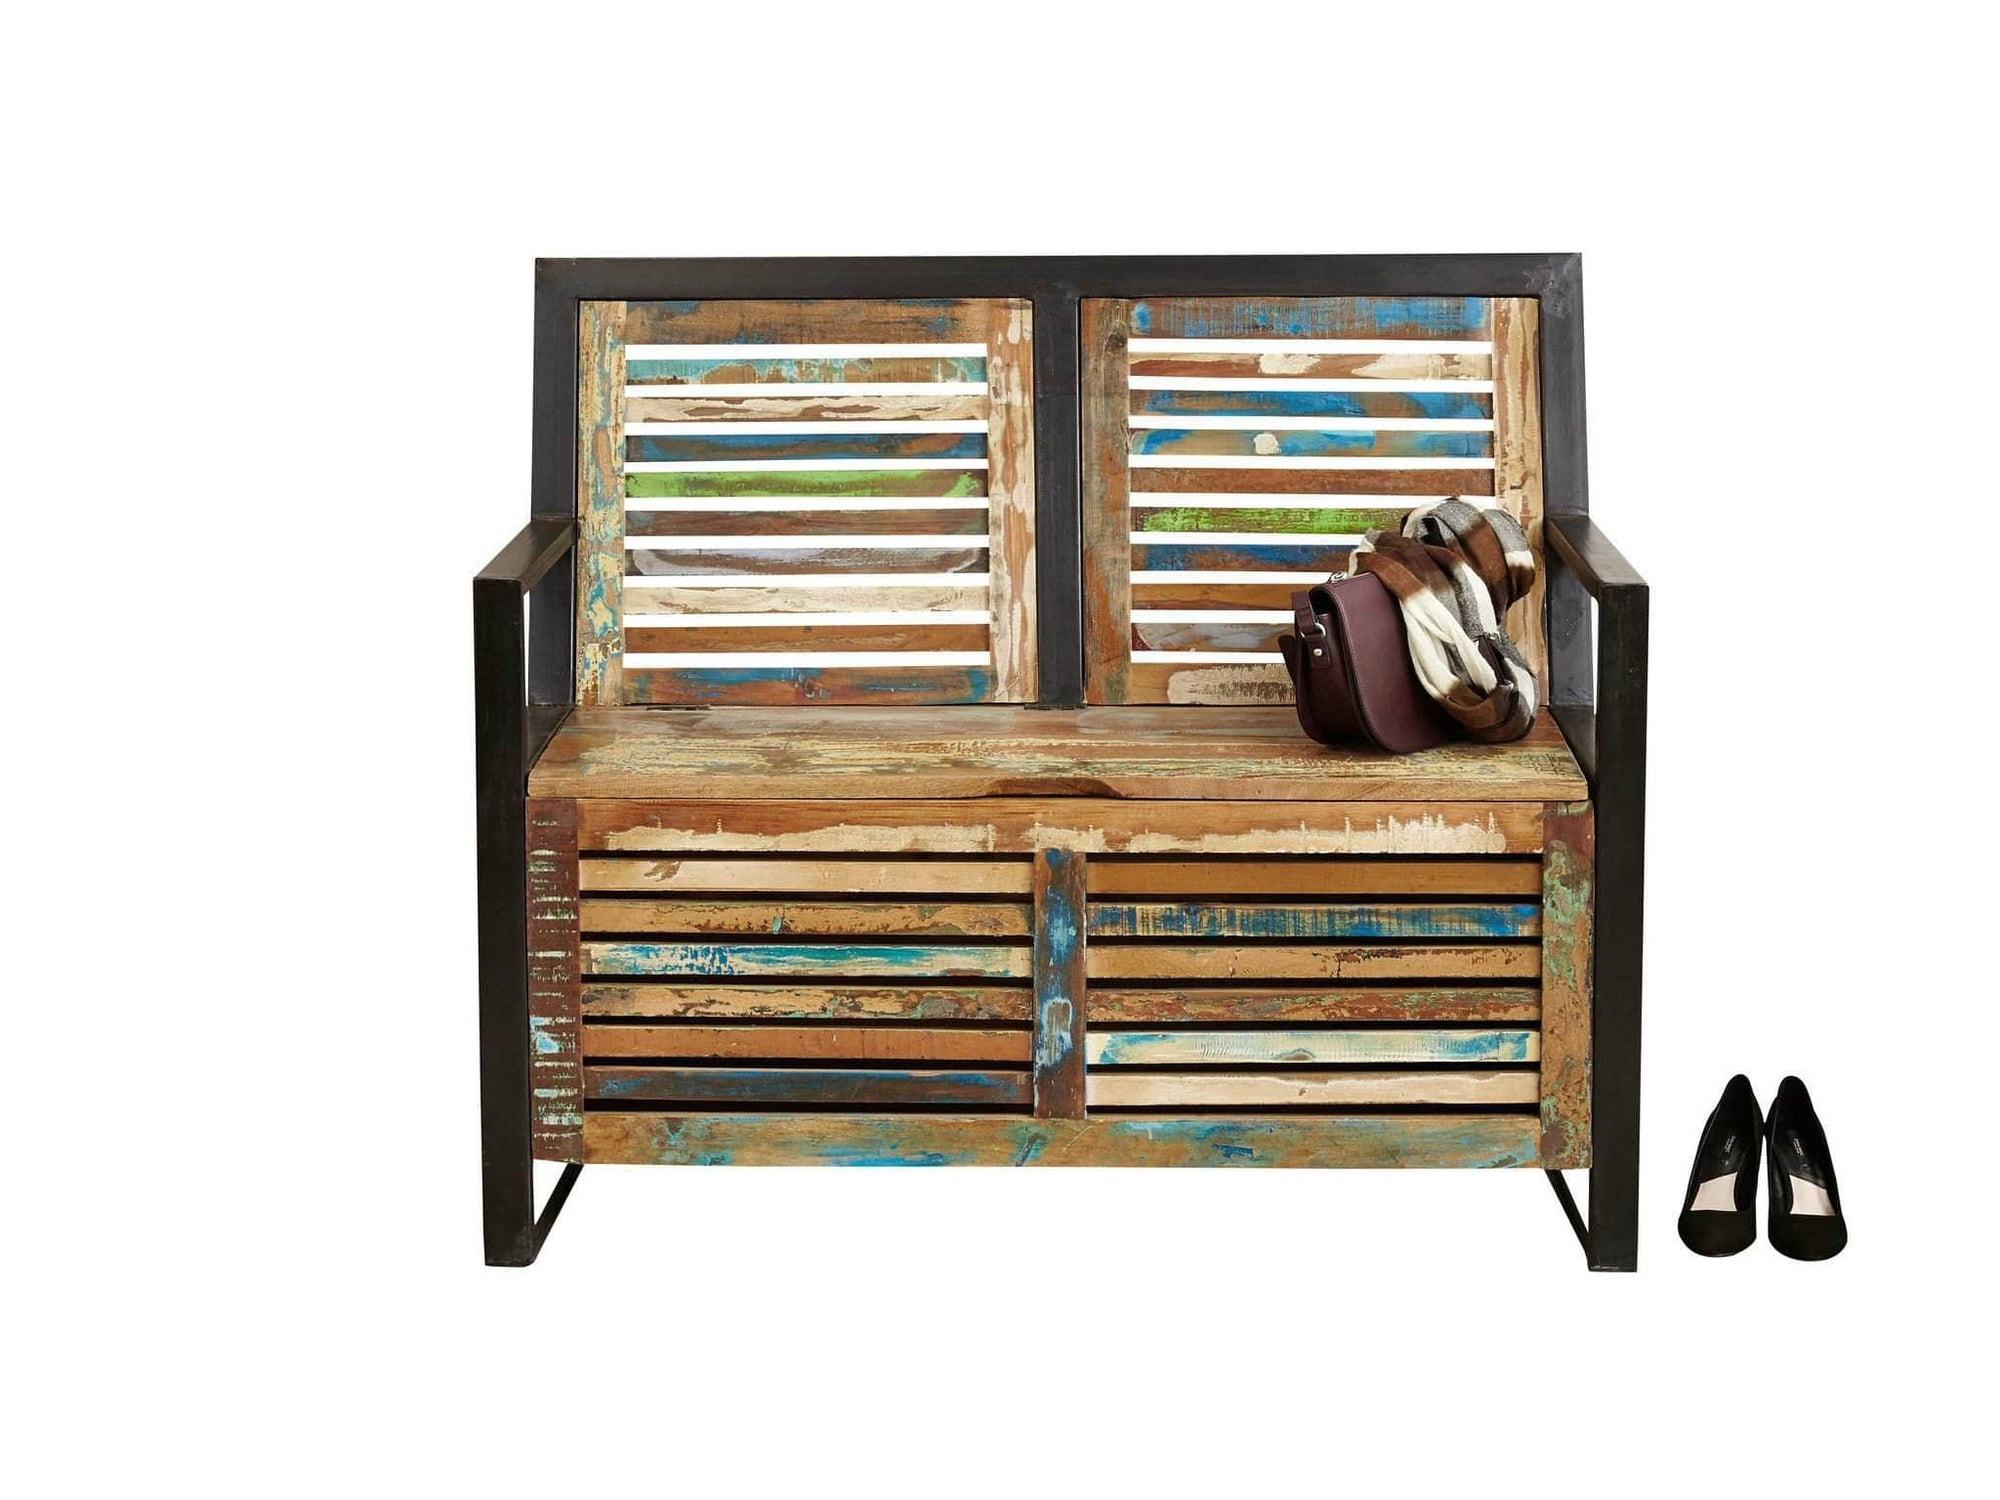 Asia range reclaimed wood monk's bench with hidden storage